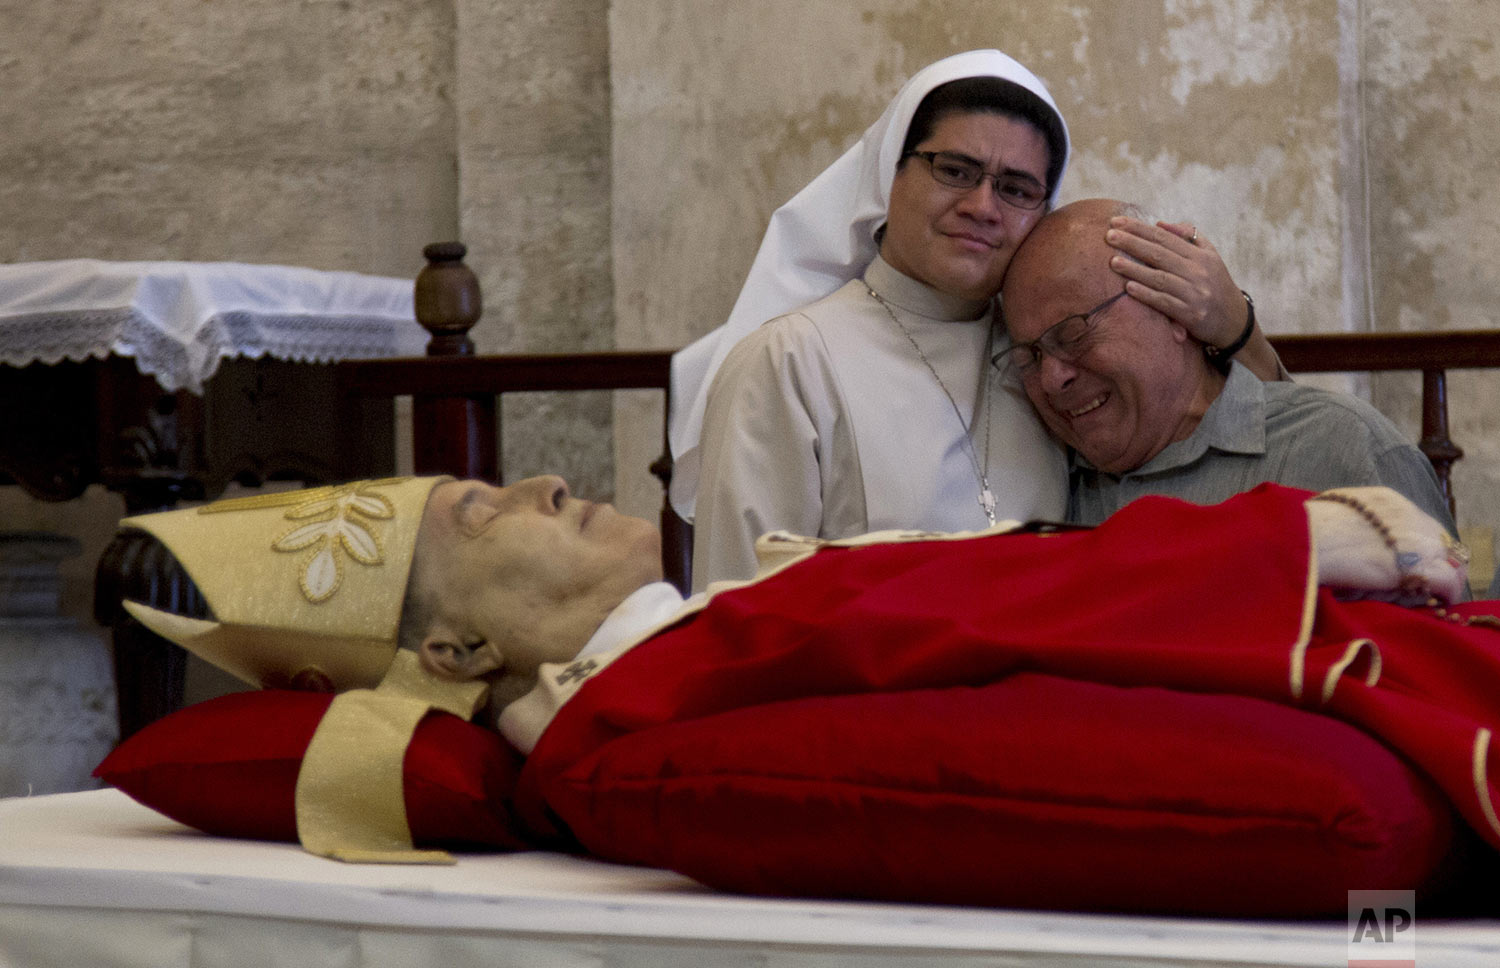 Reynol Alamino Ortega cries next to the body of his cousin, Cardinal Jaime Lucas Ortega y Alamino, during his wake inside the Cathedral in Havana, Cuba, Saturday, July 27, 2019. Ortega, a sugar worker's son who oversaw the first papal visit to Cuba, helped lower barriers to believers in the communist country and played a role in mediating improved U.S.-Cuba ties, died Friday at age 82. (AP Photo/Ismael Francisco)